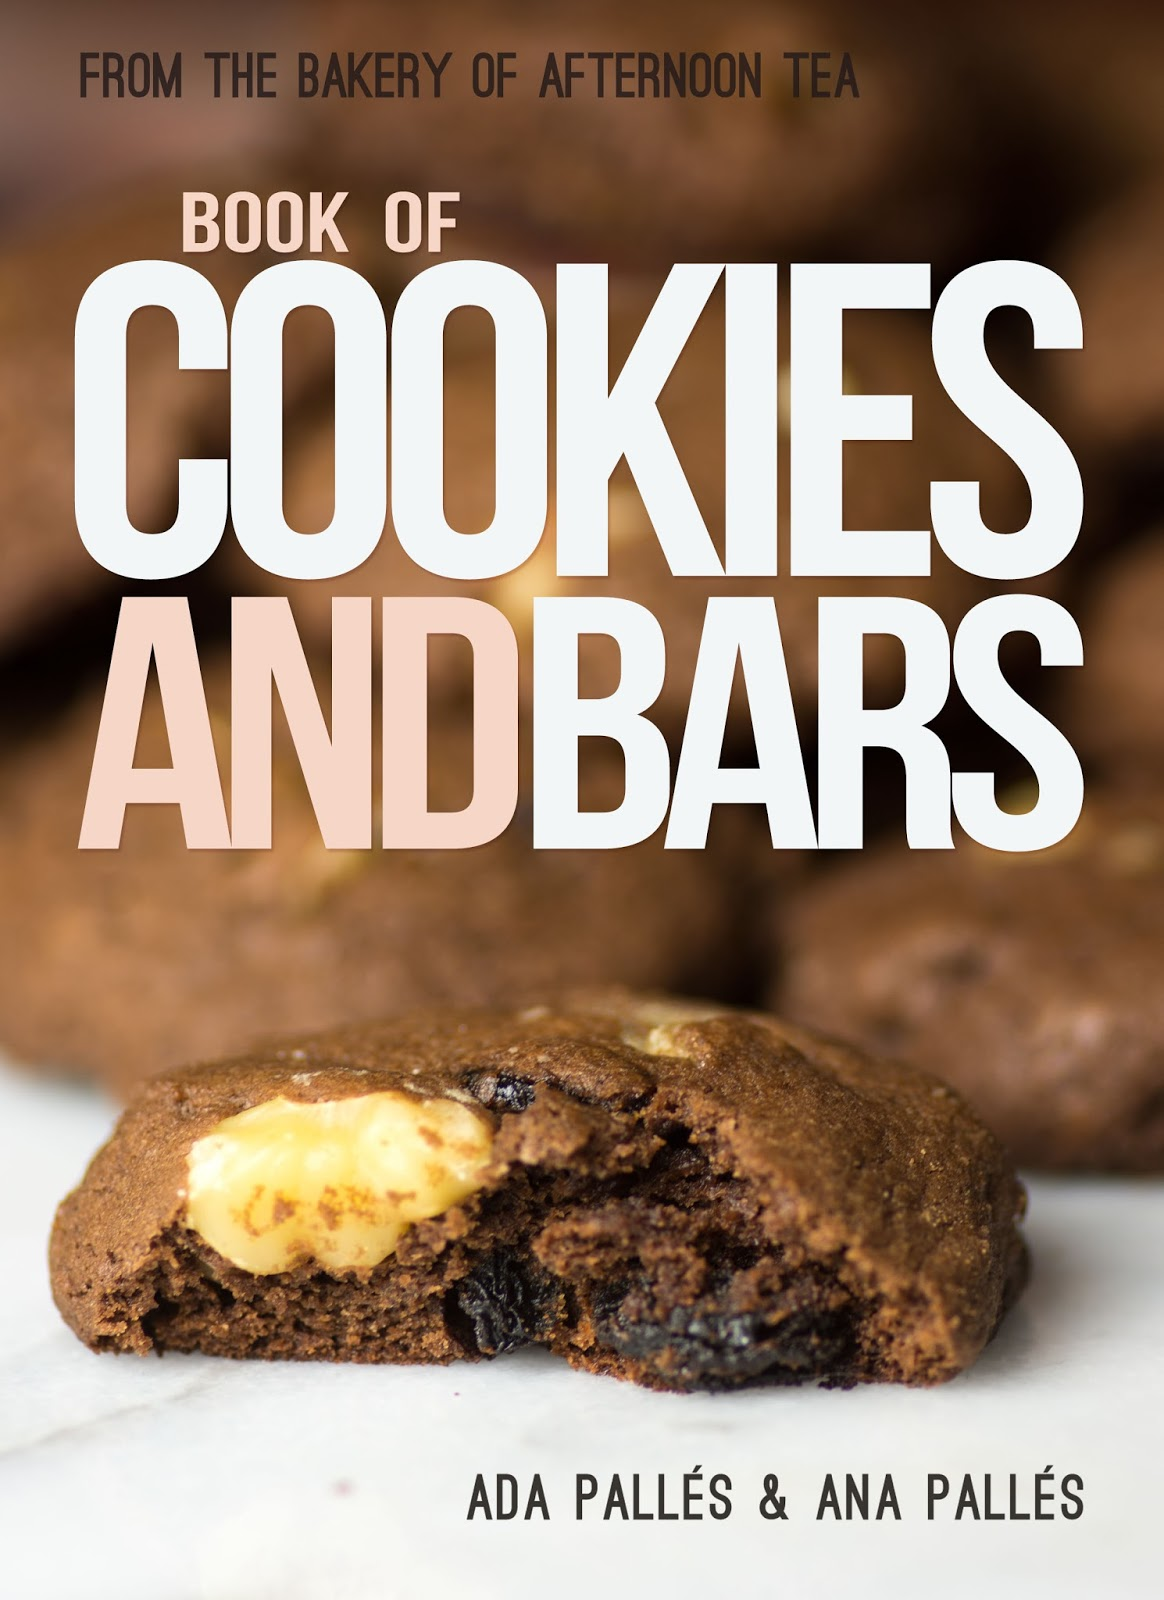 The Afternoon Tea Book of Cookies and Bars